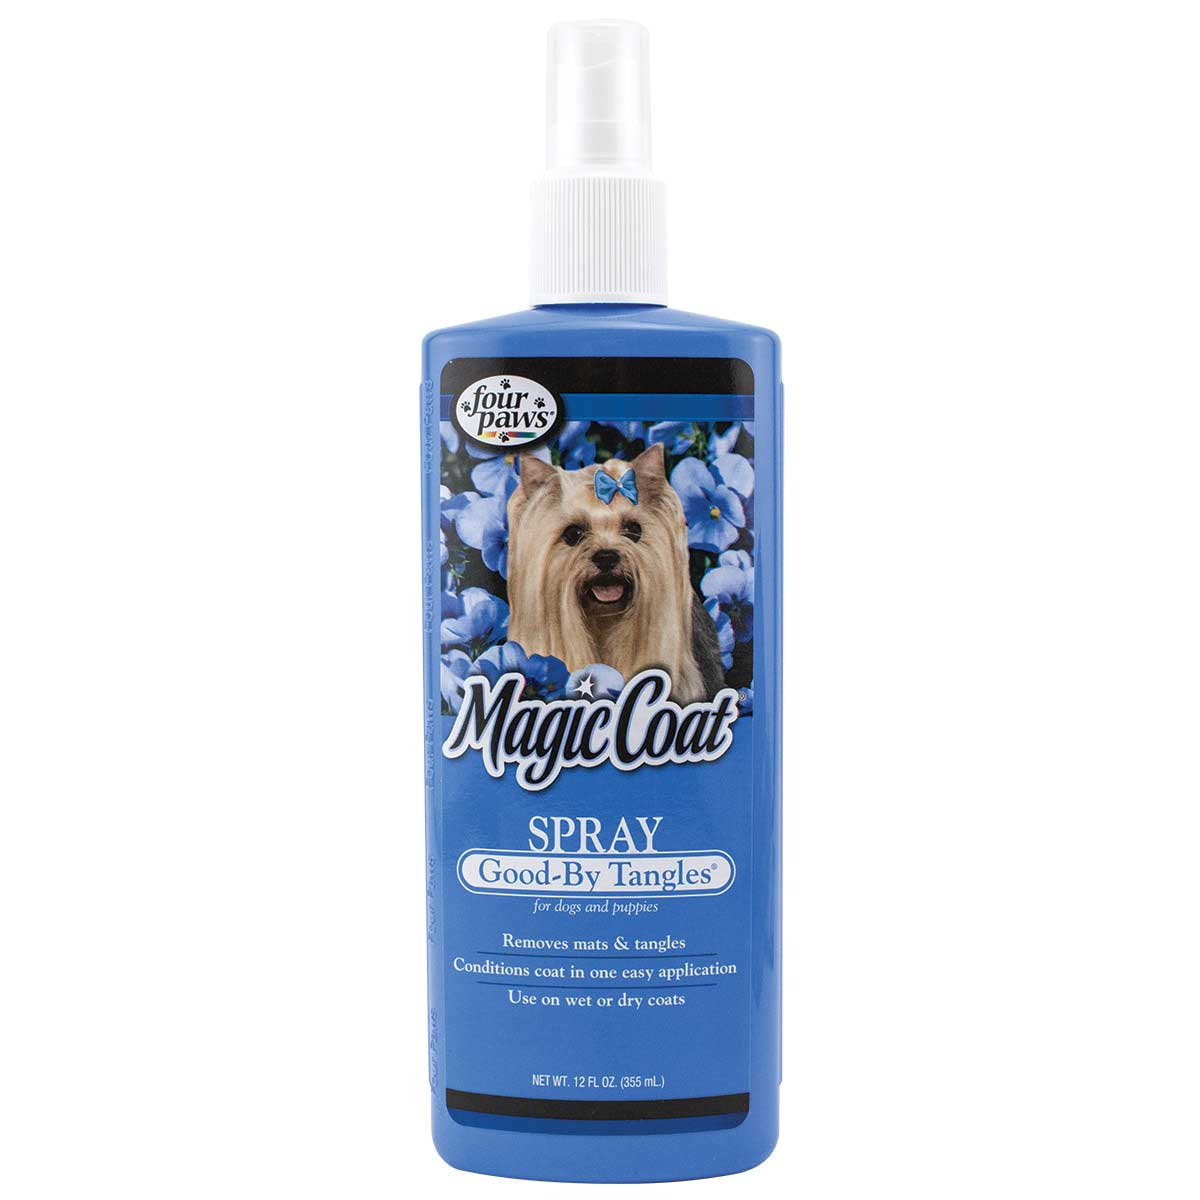 Four Paws Magic Coat Good-By Tangles Spray for Dogs and Puppies -12 ounce